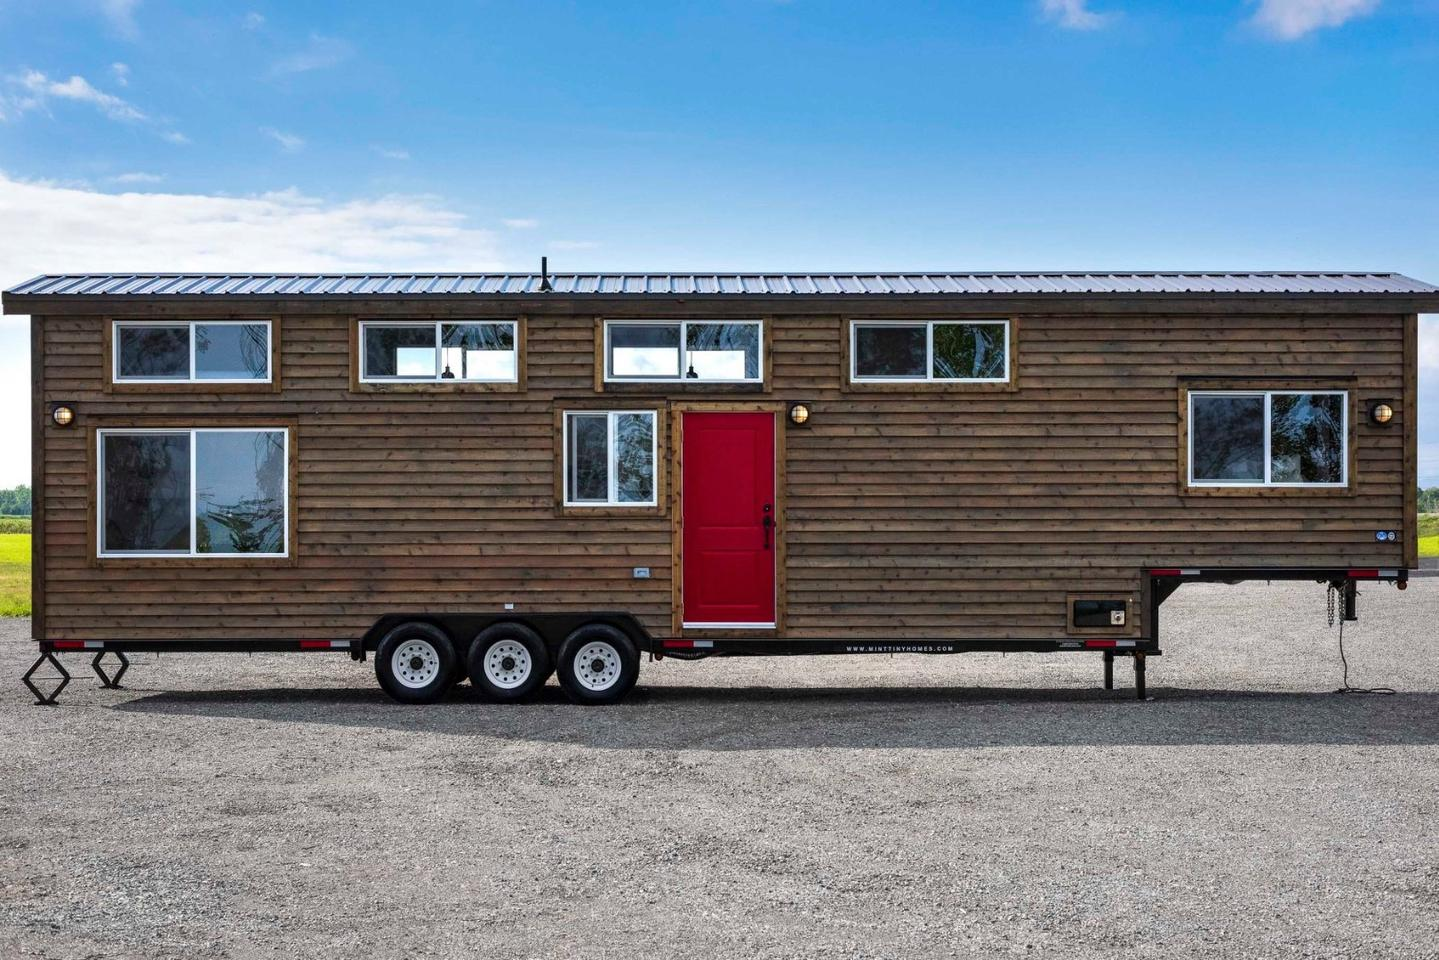 The Canada Goose has a total floorspace of around 400 sq ft (37 sq m) and is one of five tiny houses that we're highlighting in our look at huge ho